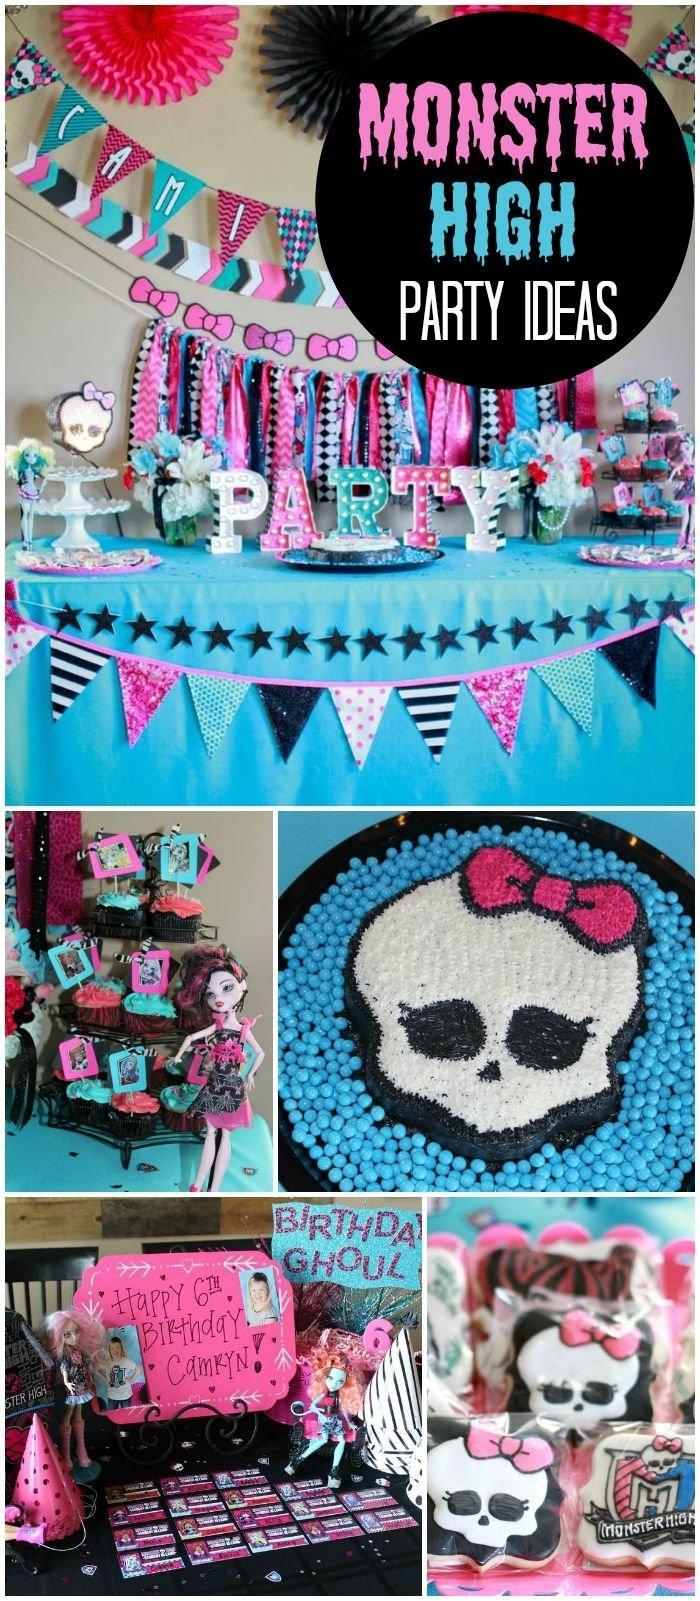 10 Fabulous Monster High Ideas For Birthday Party 91 best monster high party ideas images on pinterest monster high 2020